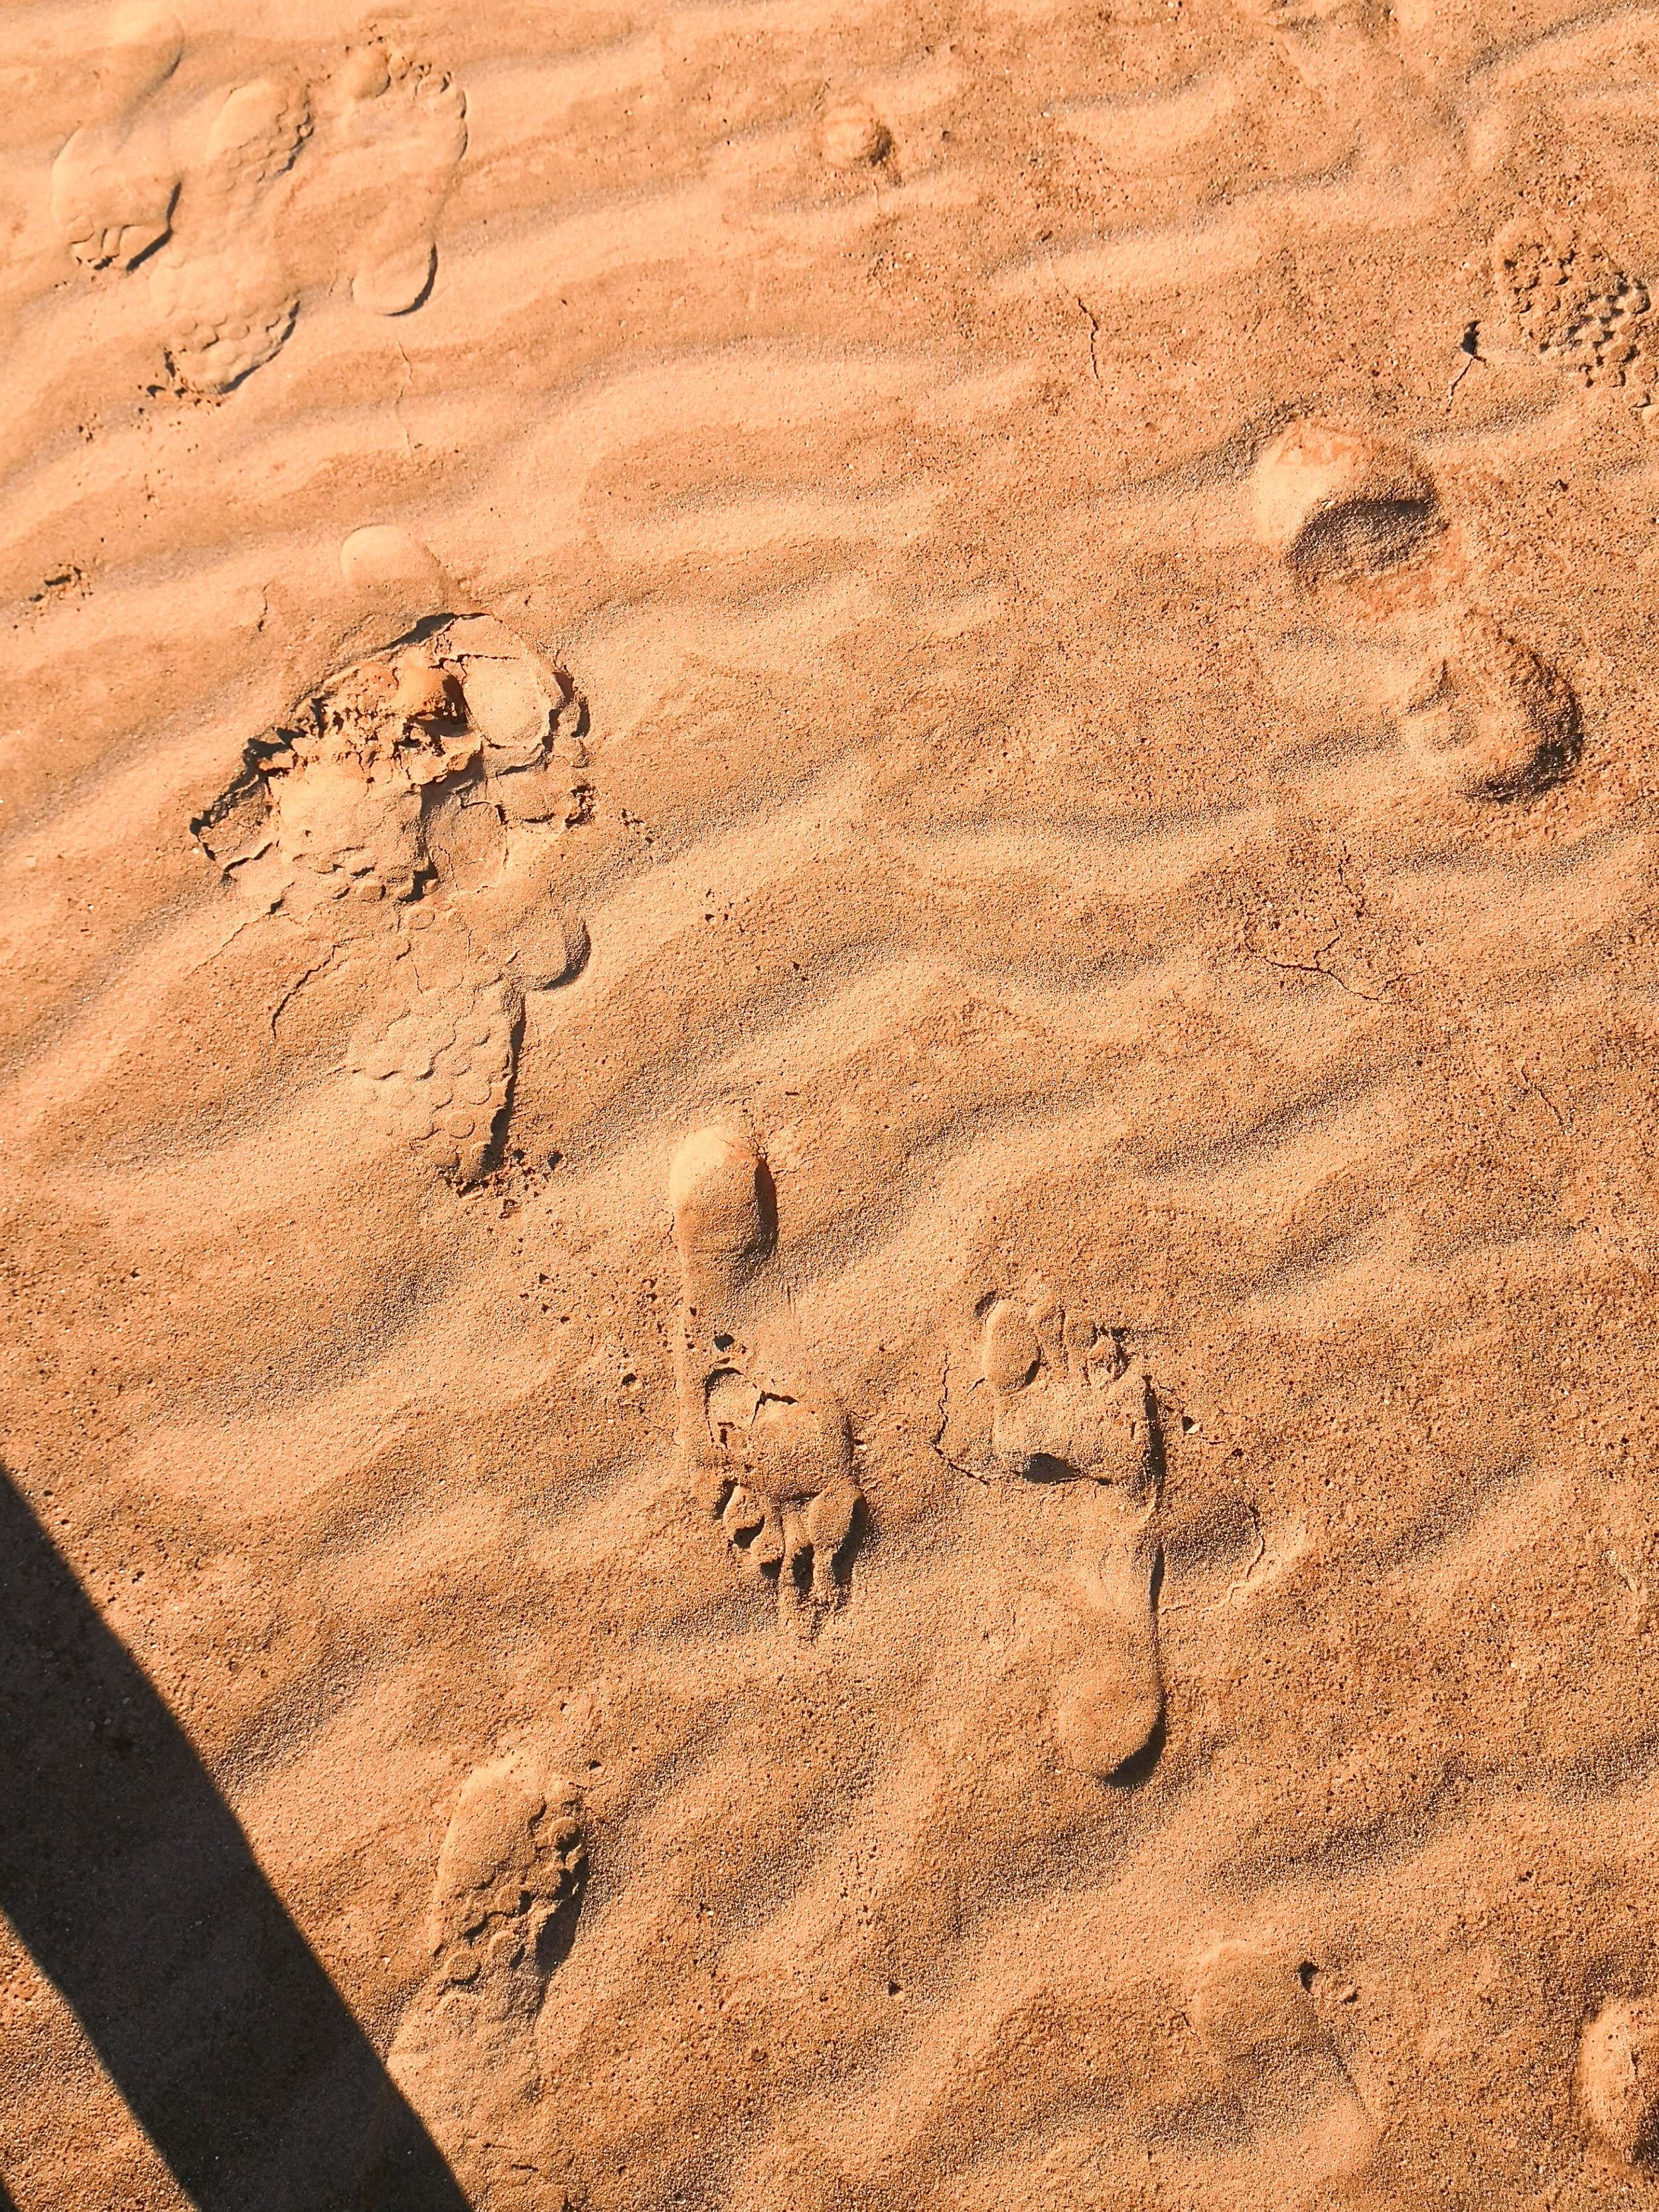 With each step of my bare feet, the cold, course, sand exfoliated that anxiety.